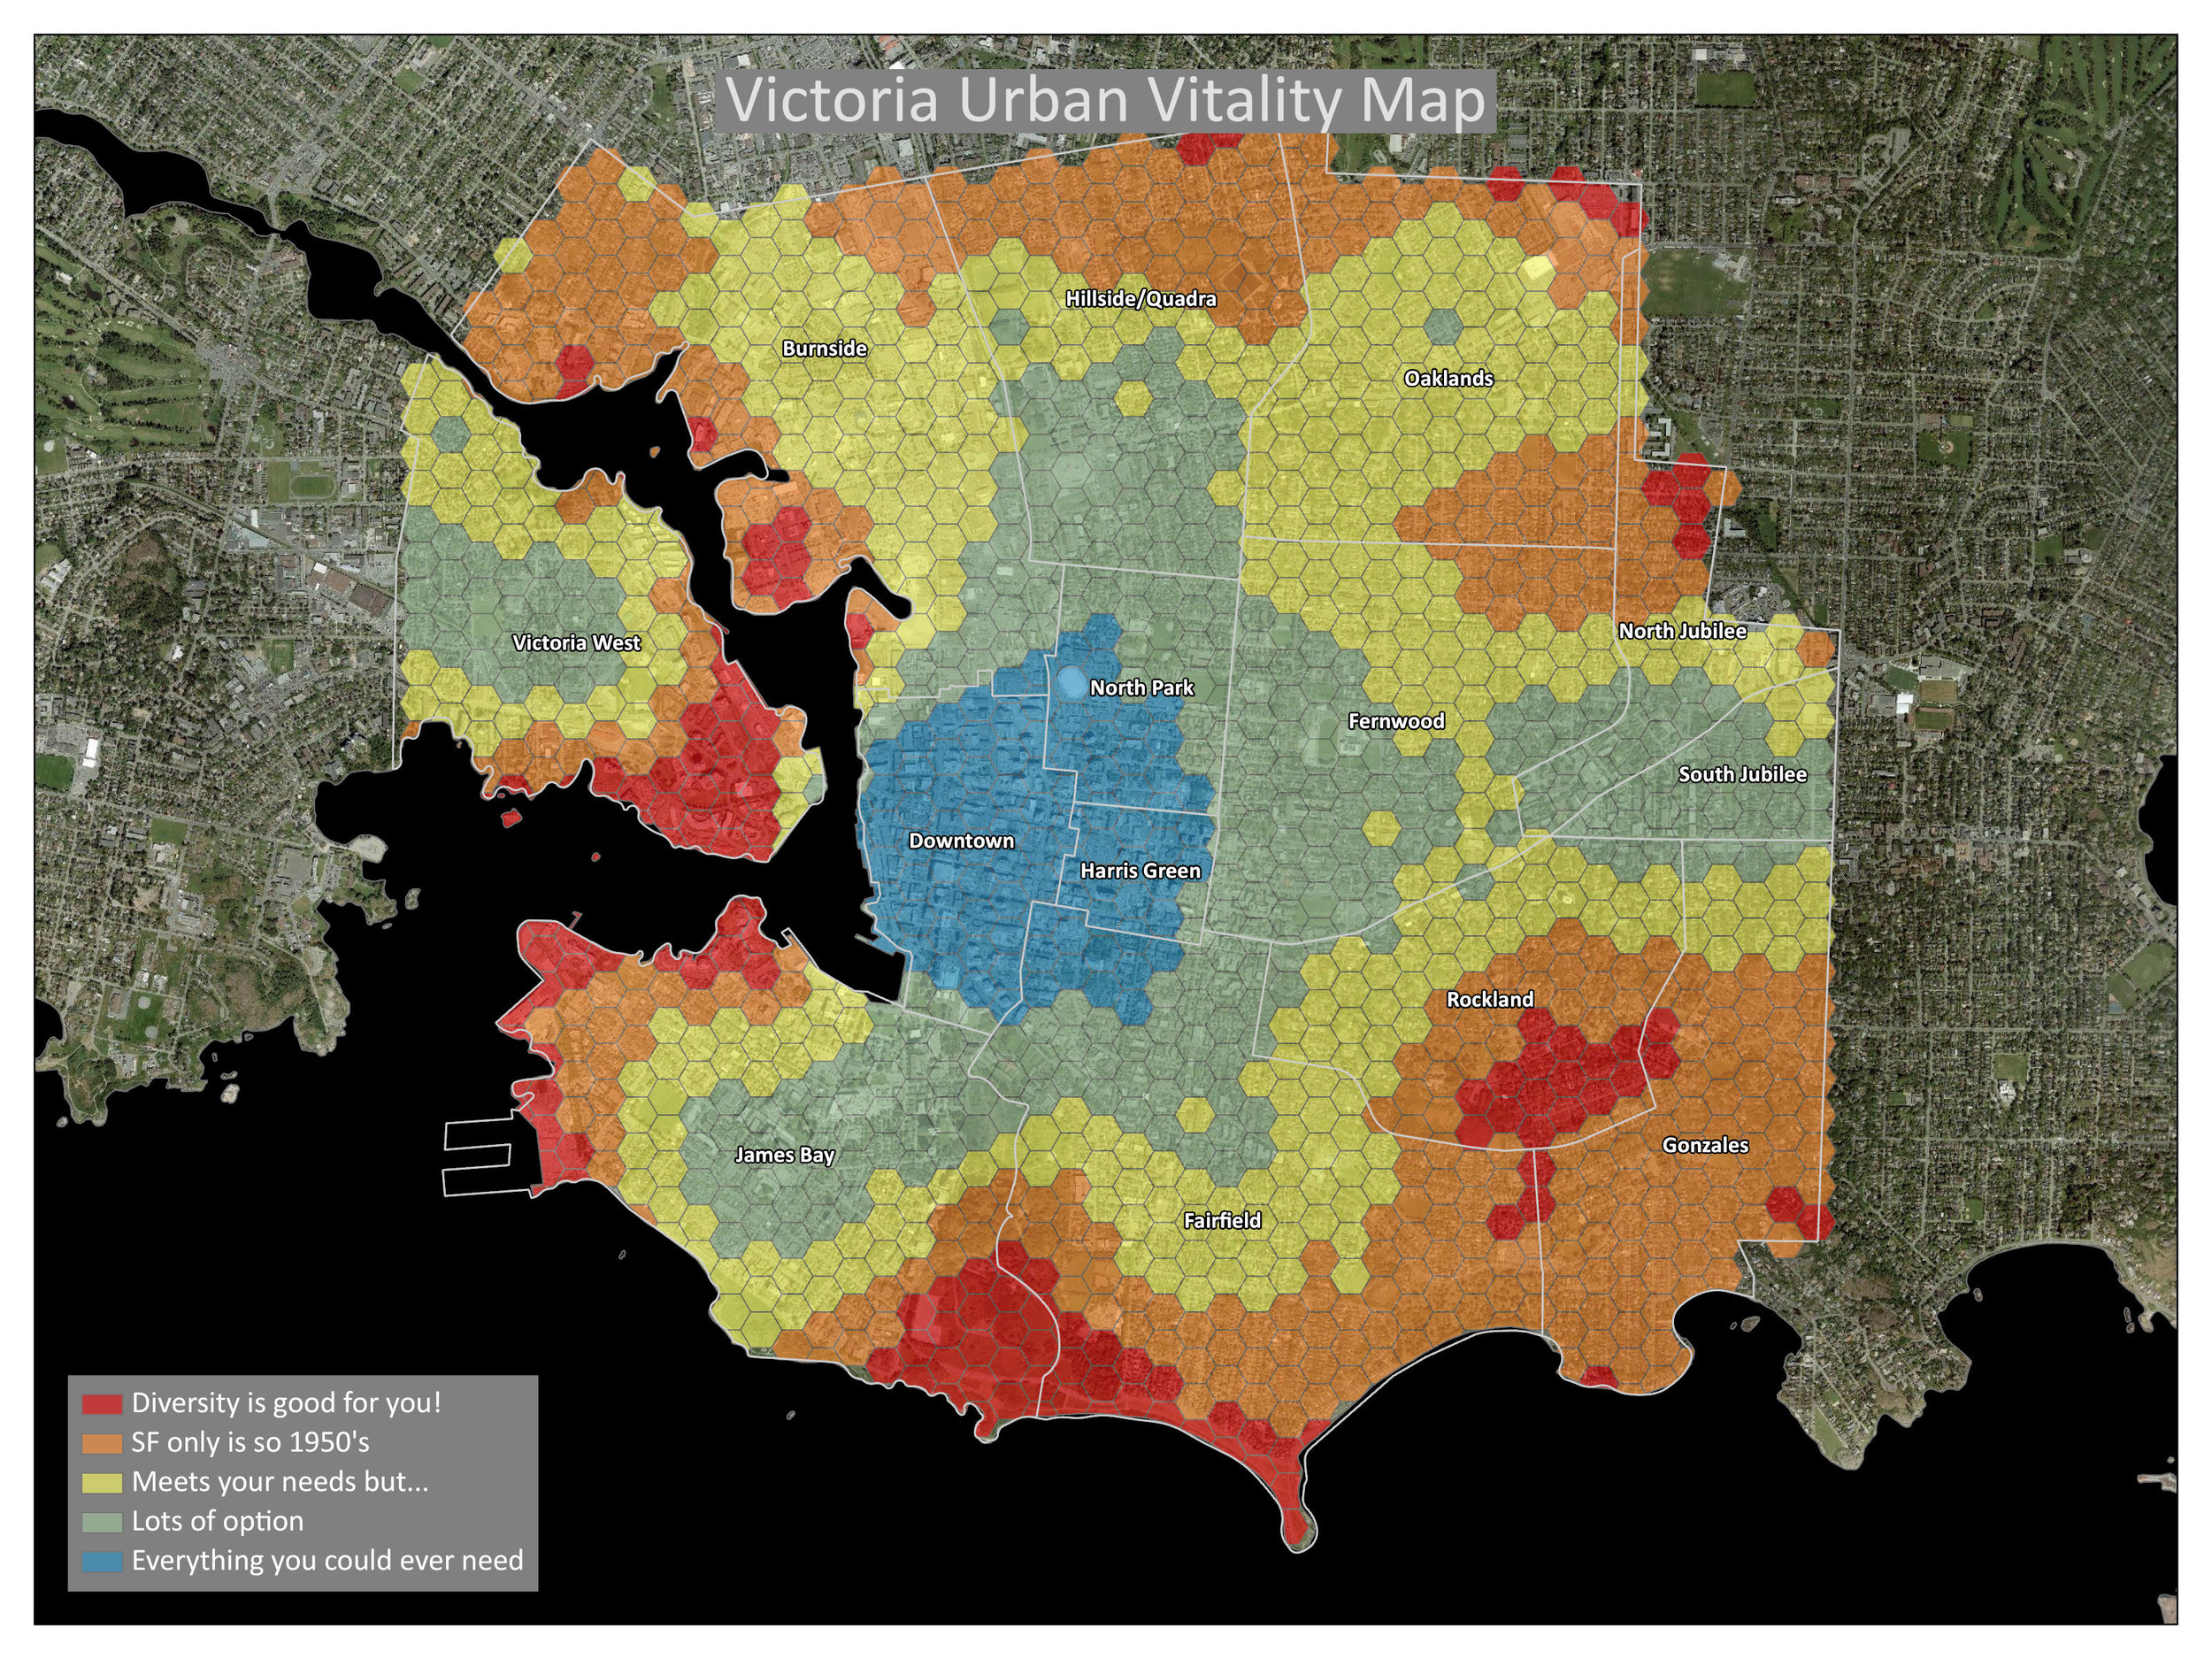 Victoria Walkability Index, the combination of four factors:  - Higher Population Density -> Higher Score  -More Commercial FAR -> Higher Score  -Balanced Mix of Land Uses -> Higher Score  -More road / walking network connectivity -> Higher Score